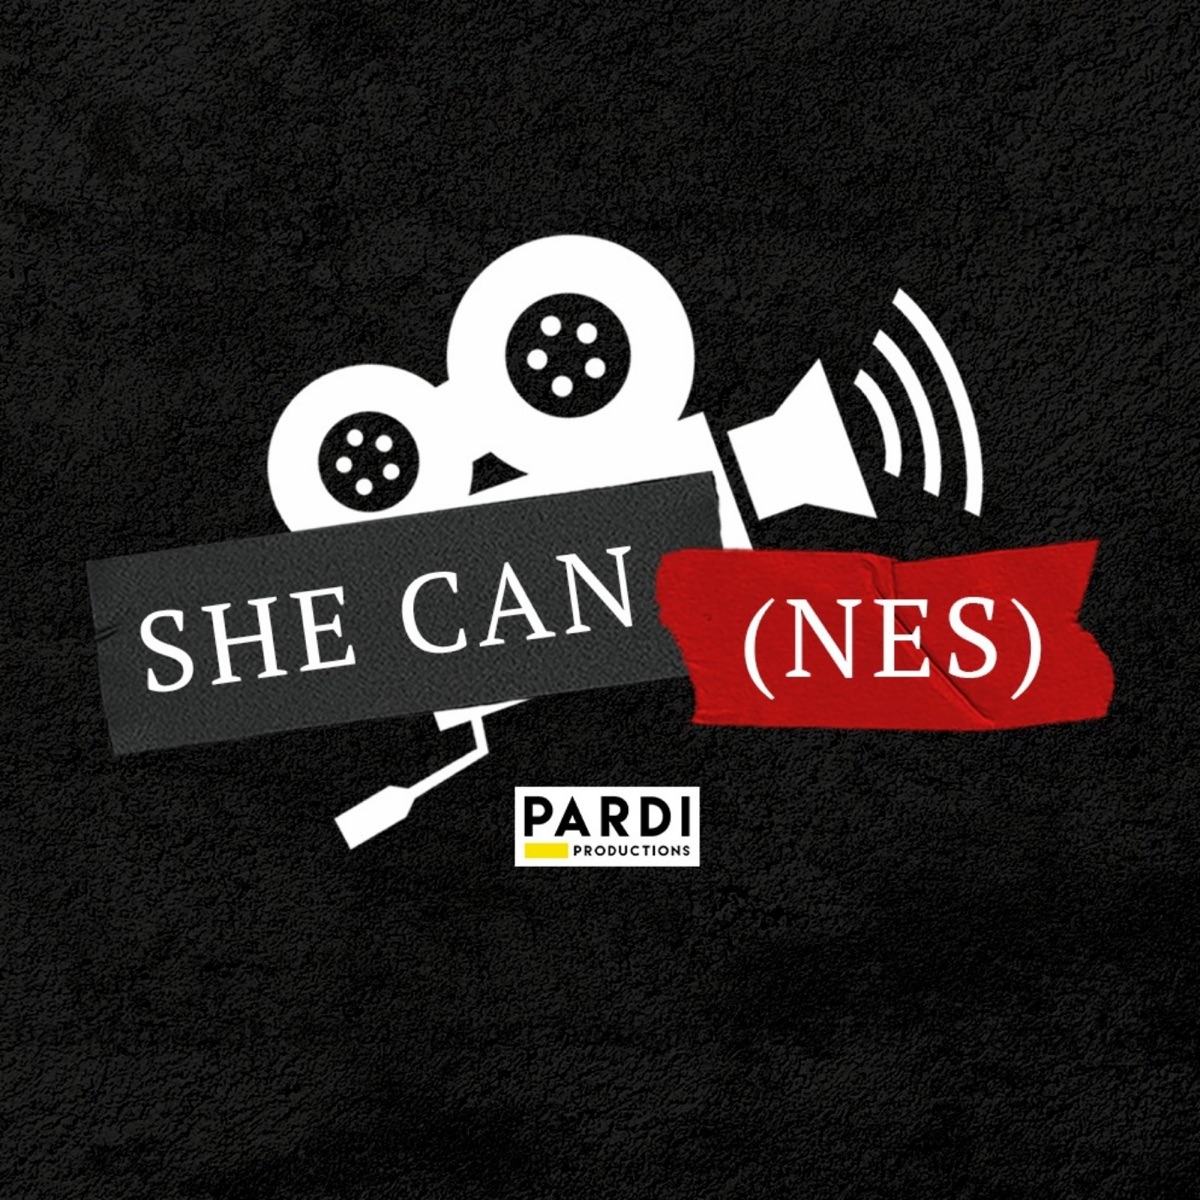 She Cannes